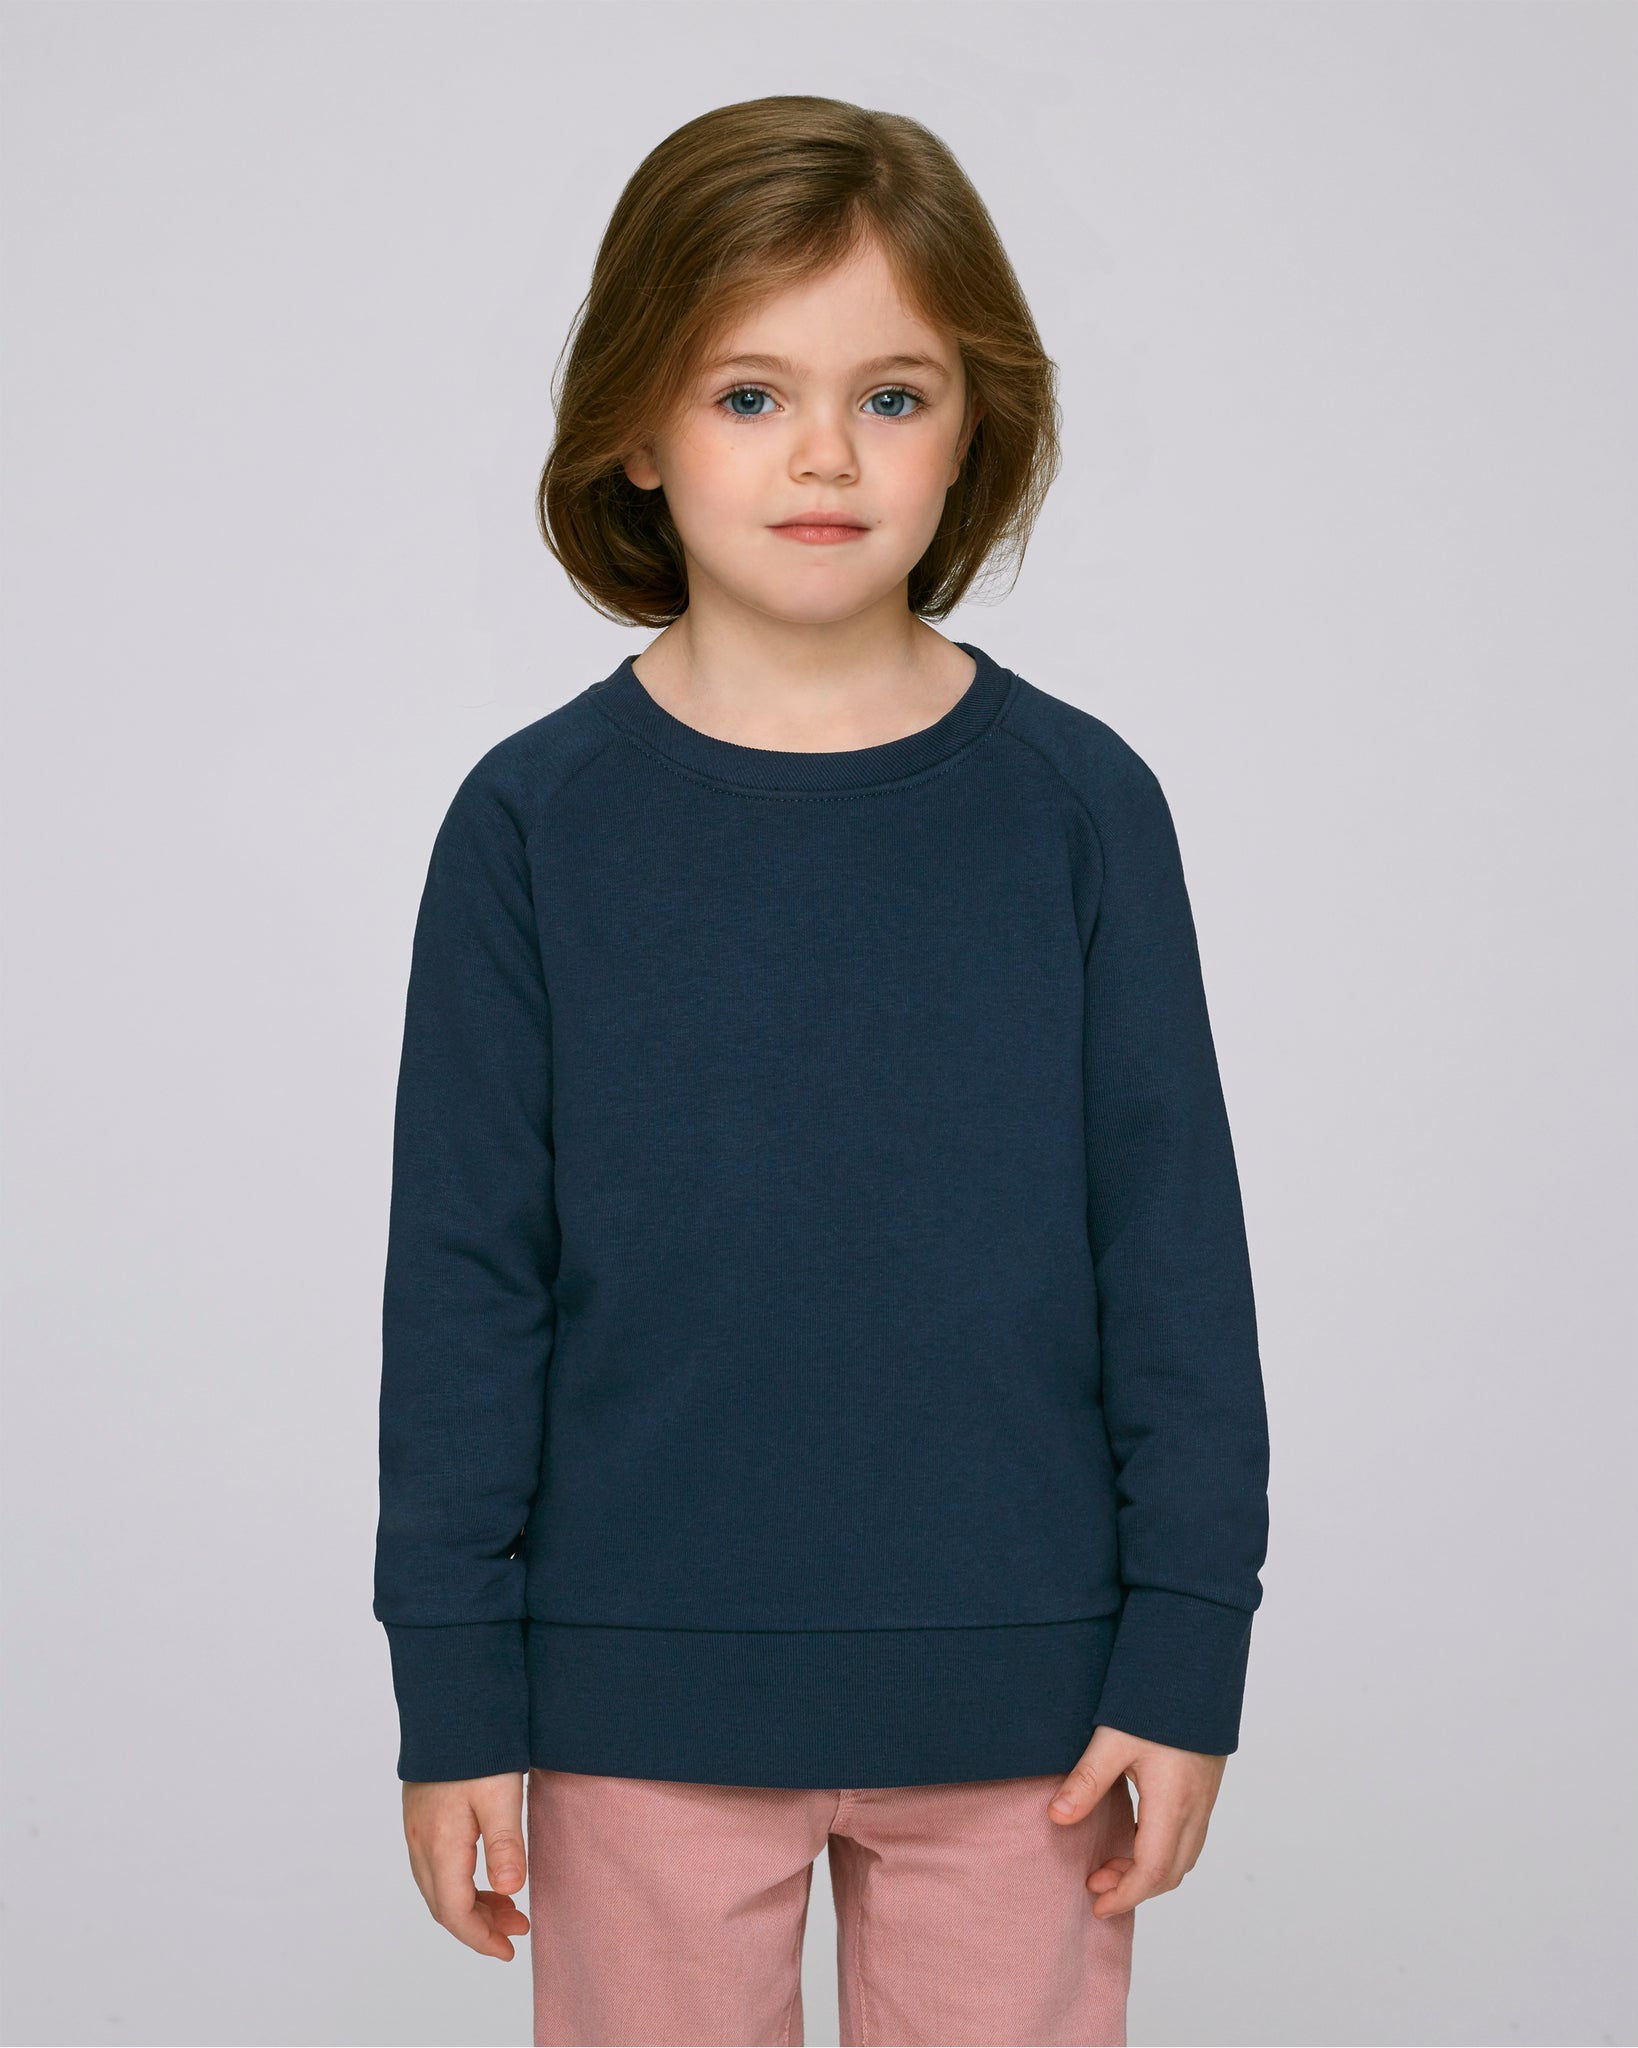 Kids Organic Sweatshirt Navy